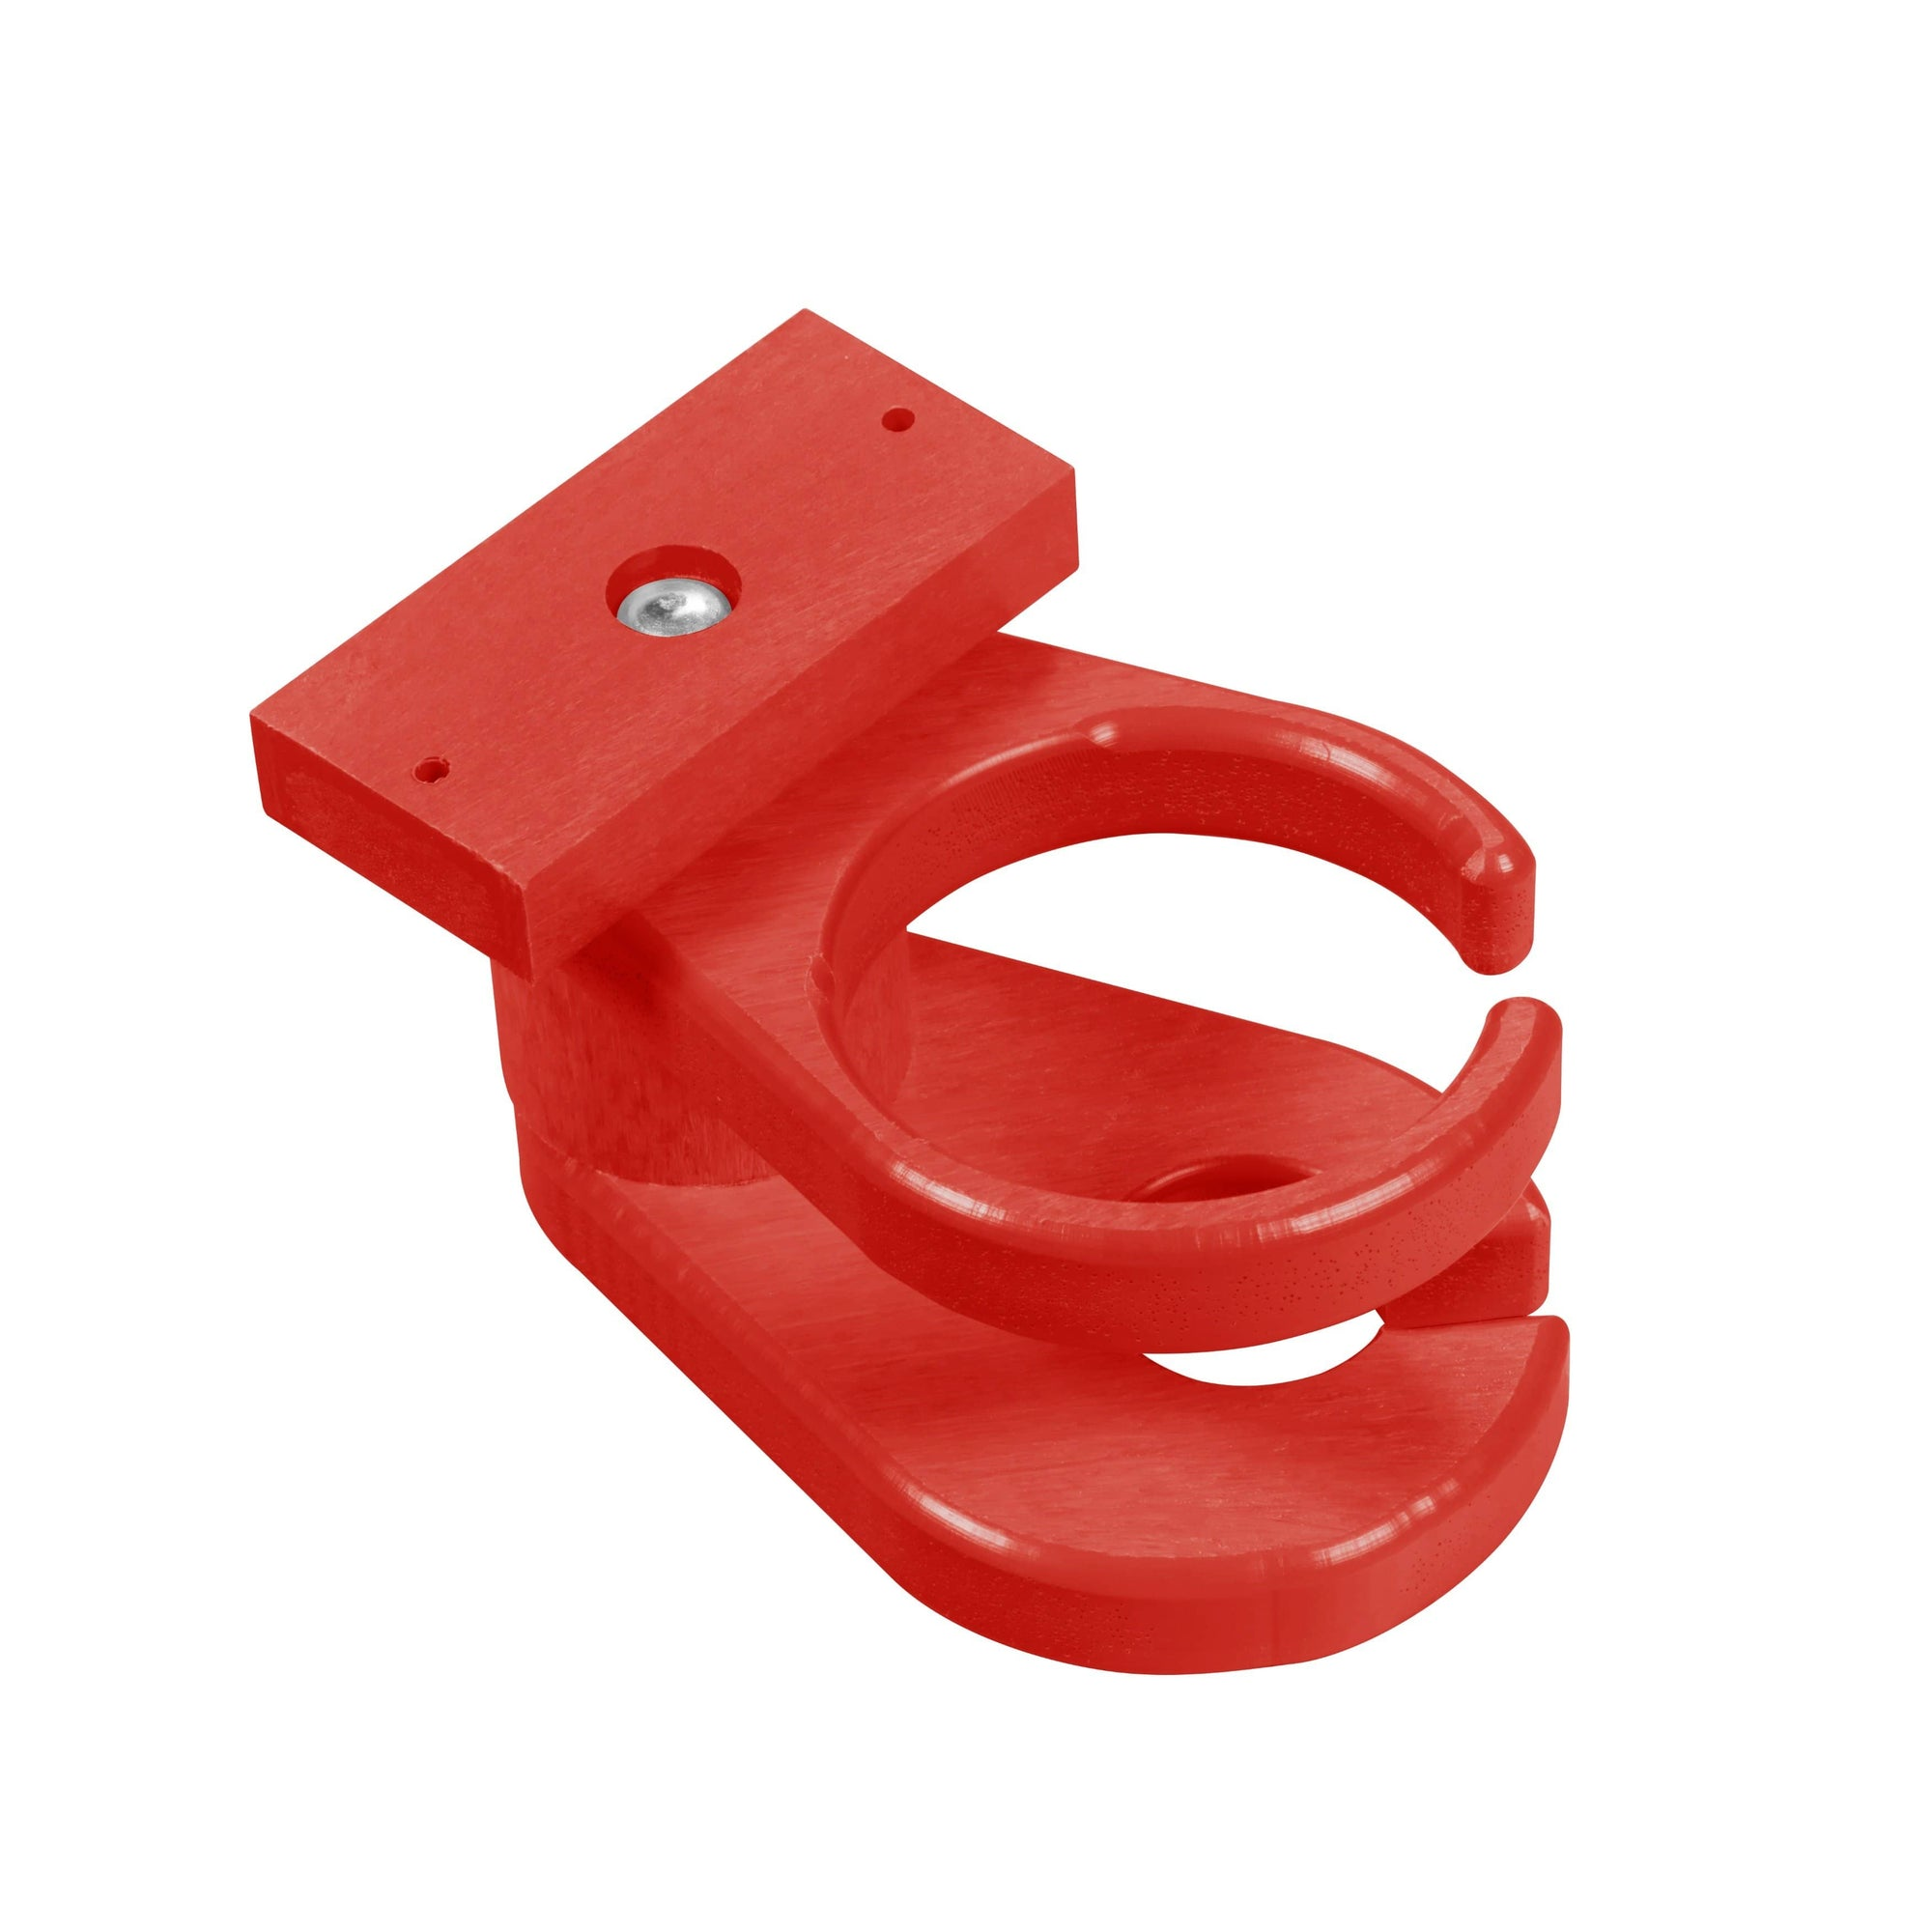 C.R. Plastic Products Furniture Accessories Red-01 A01 Adirondack Cup & Wineglass Holder